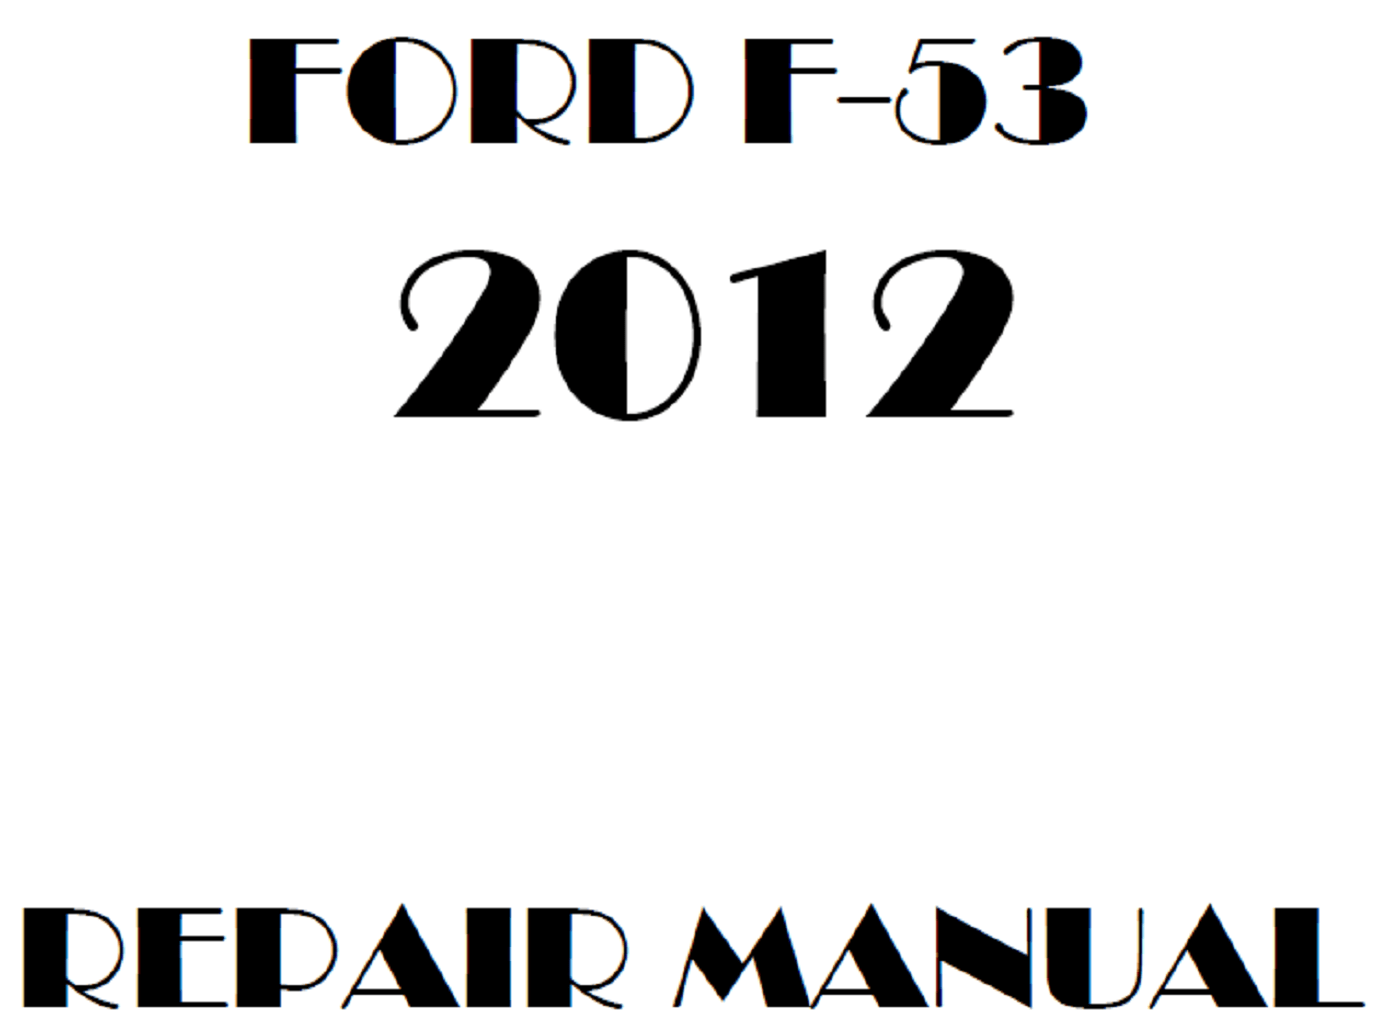 2012 Ford F53 repair manual